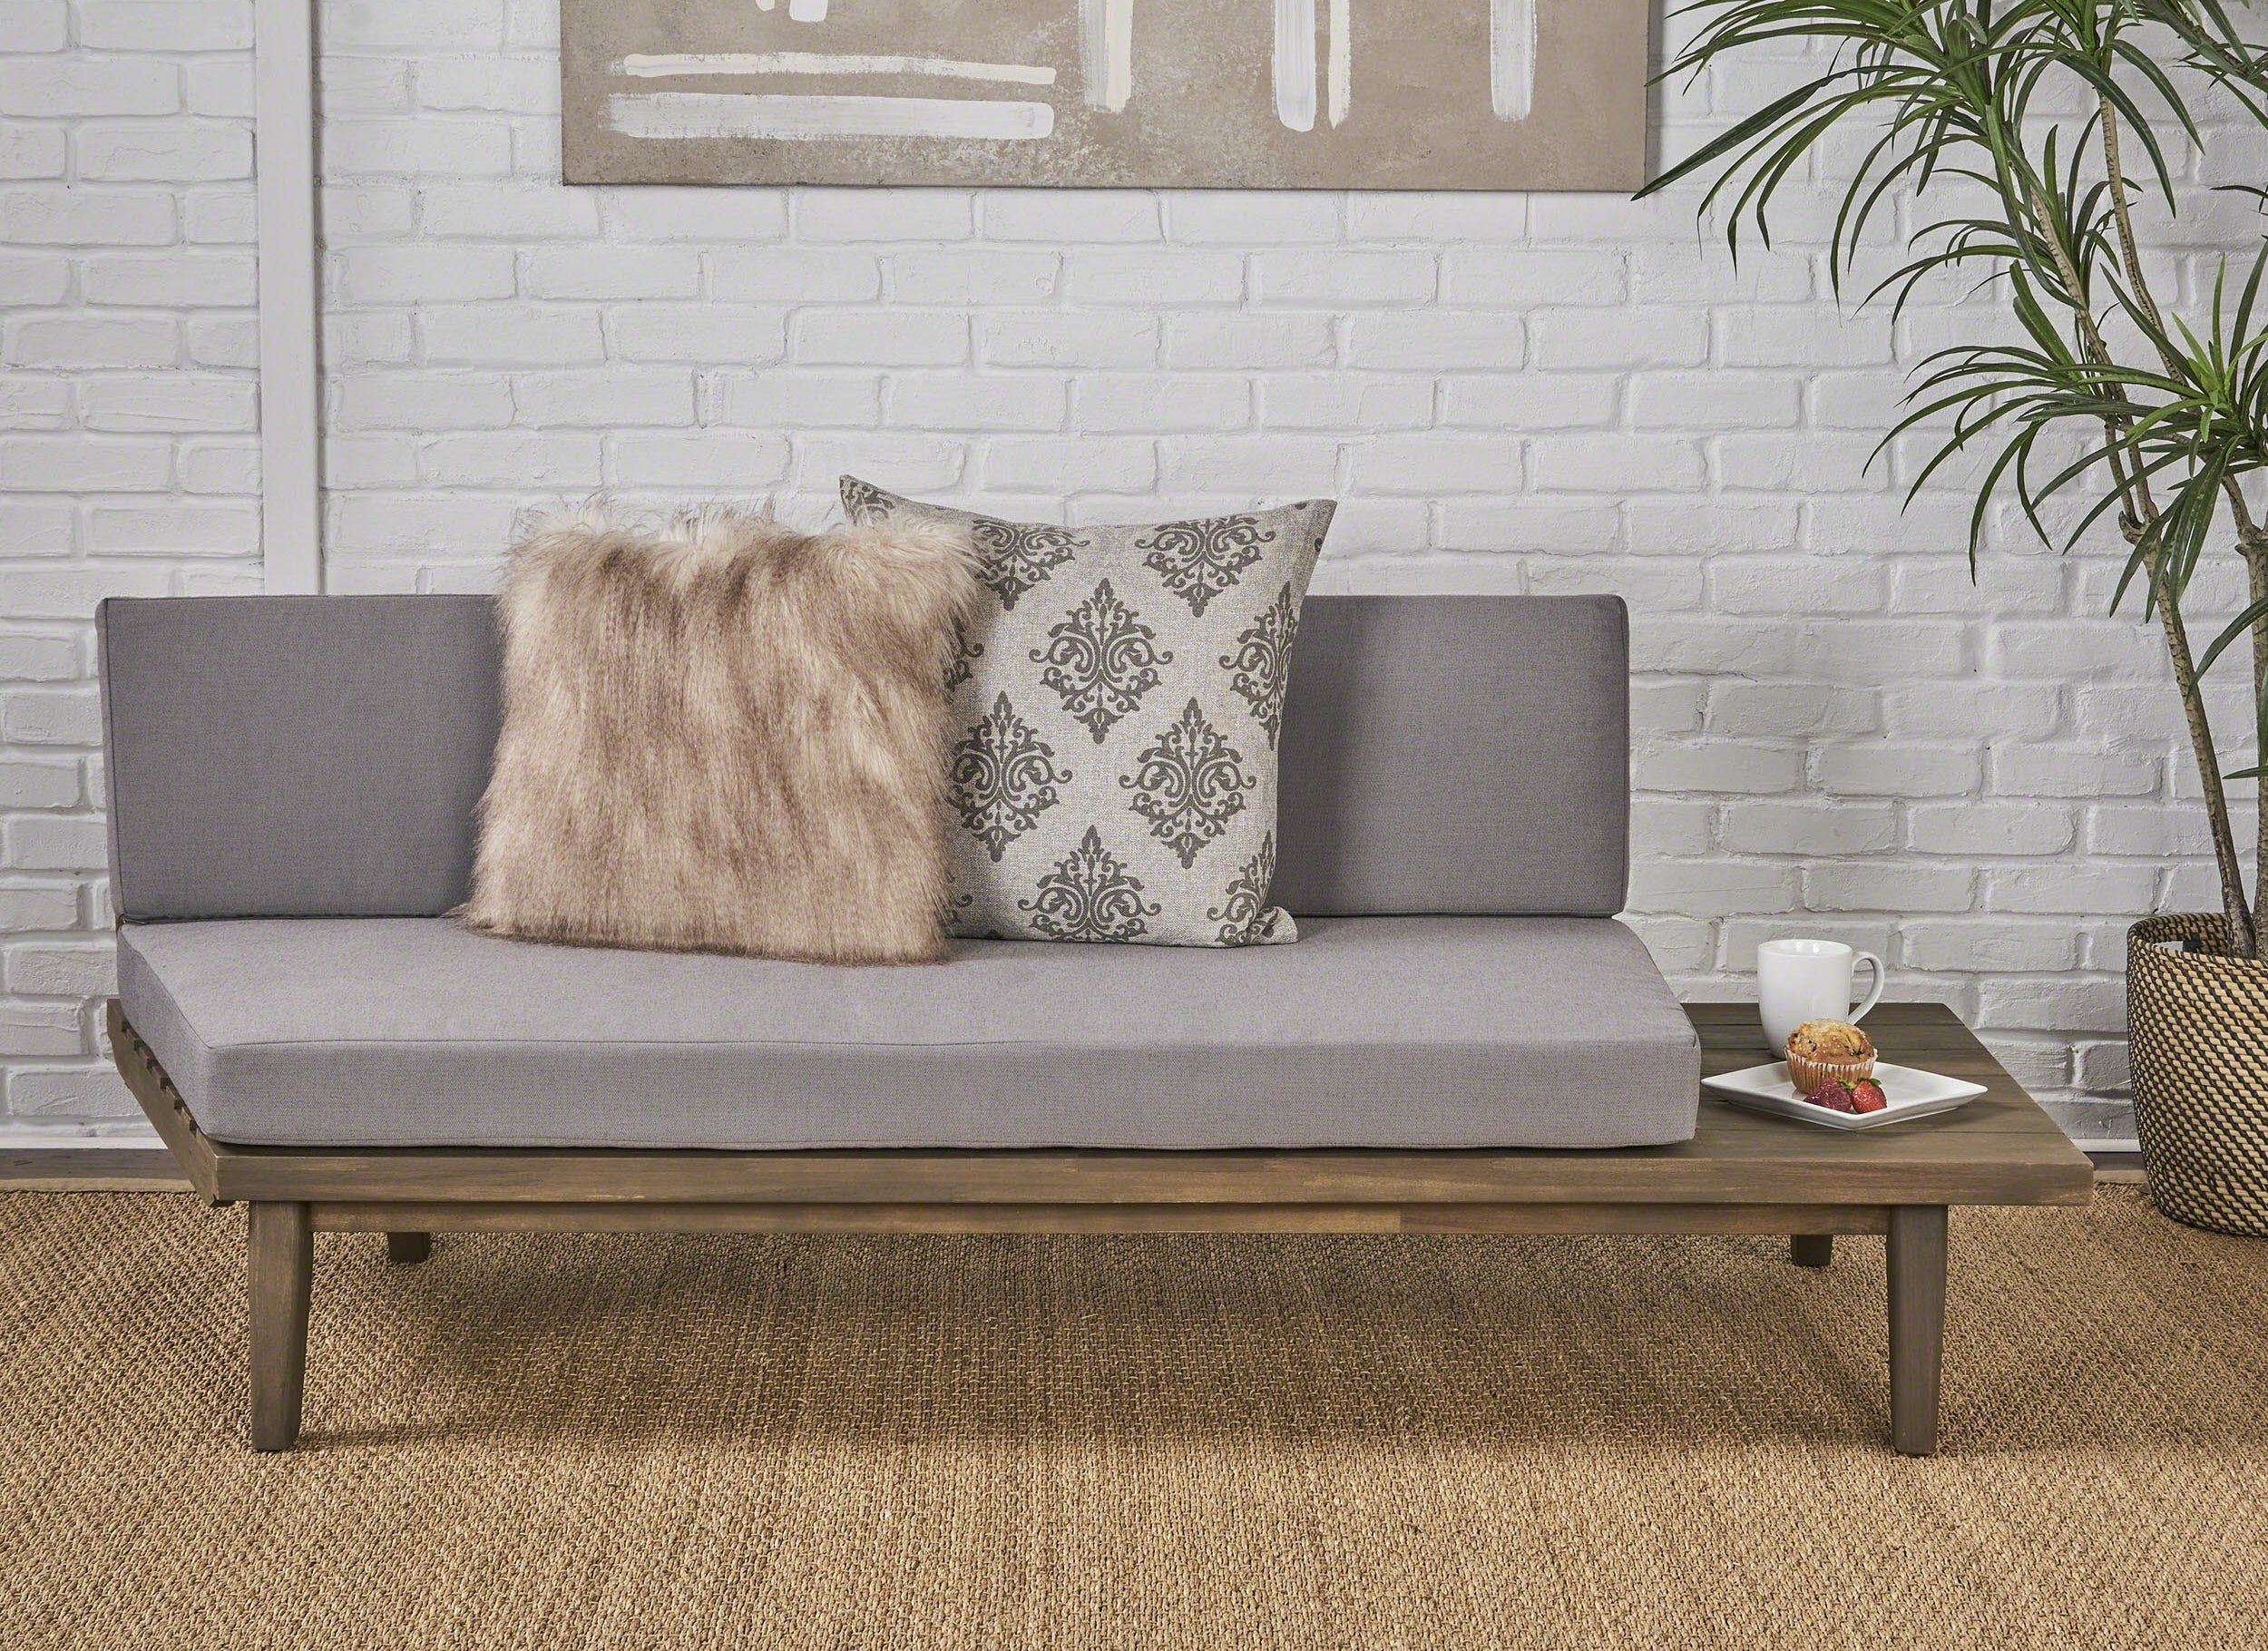 Gray minimalist couch with wooden frame and built-in side table